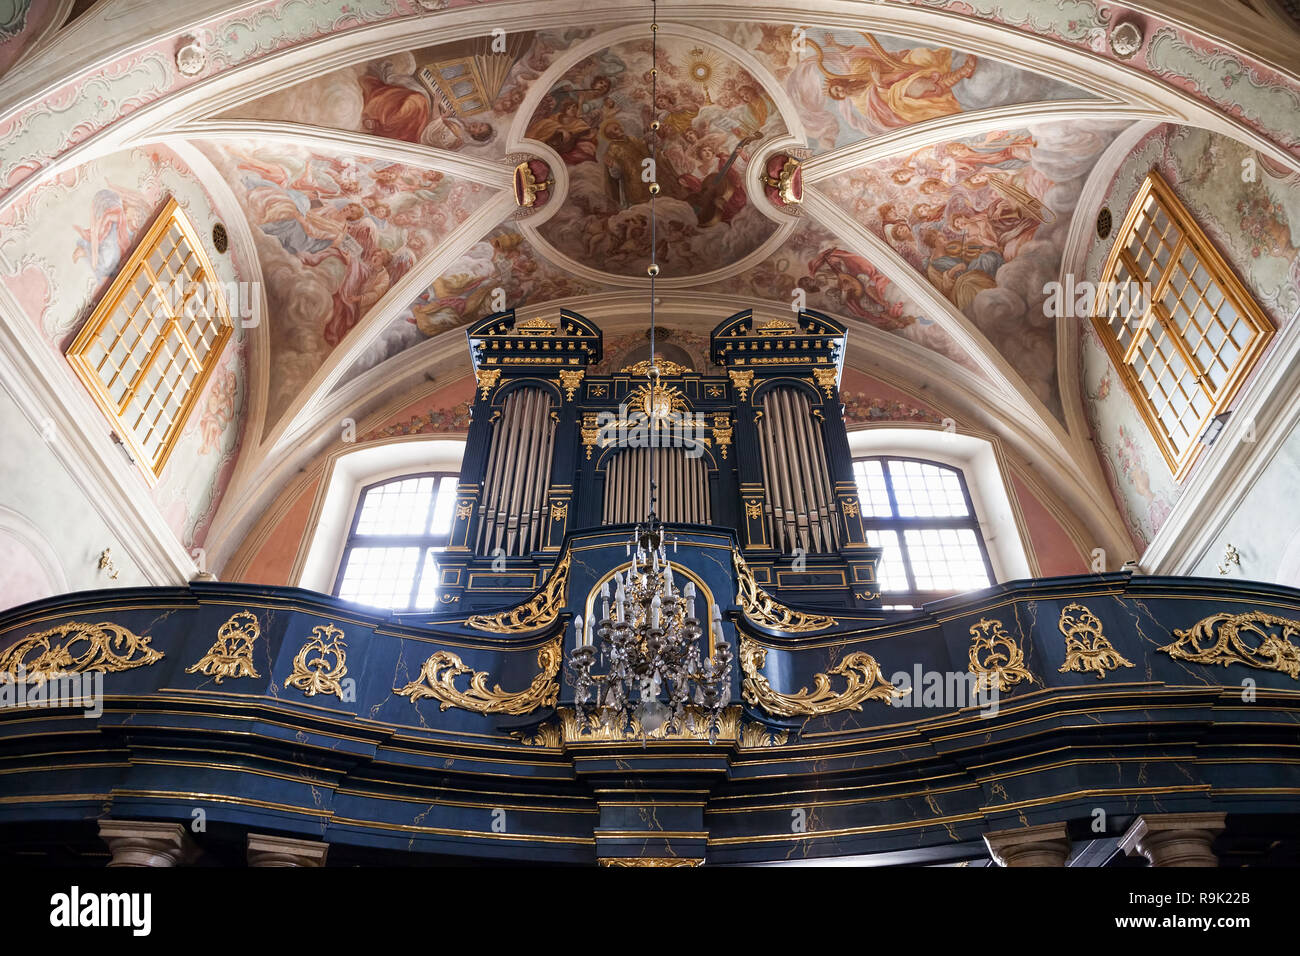 St. Barbara Church interior in Old Town of Krakow, Poland, pipe organ and Baroque vault with frescos - Stock Image